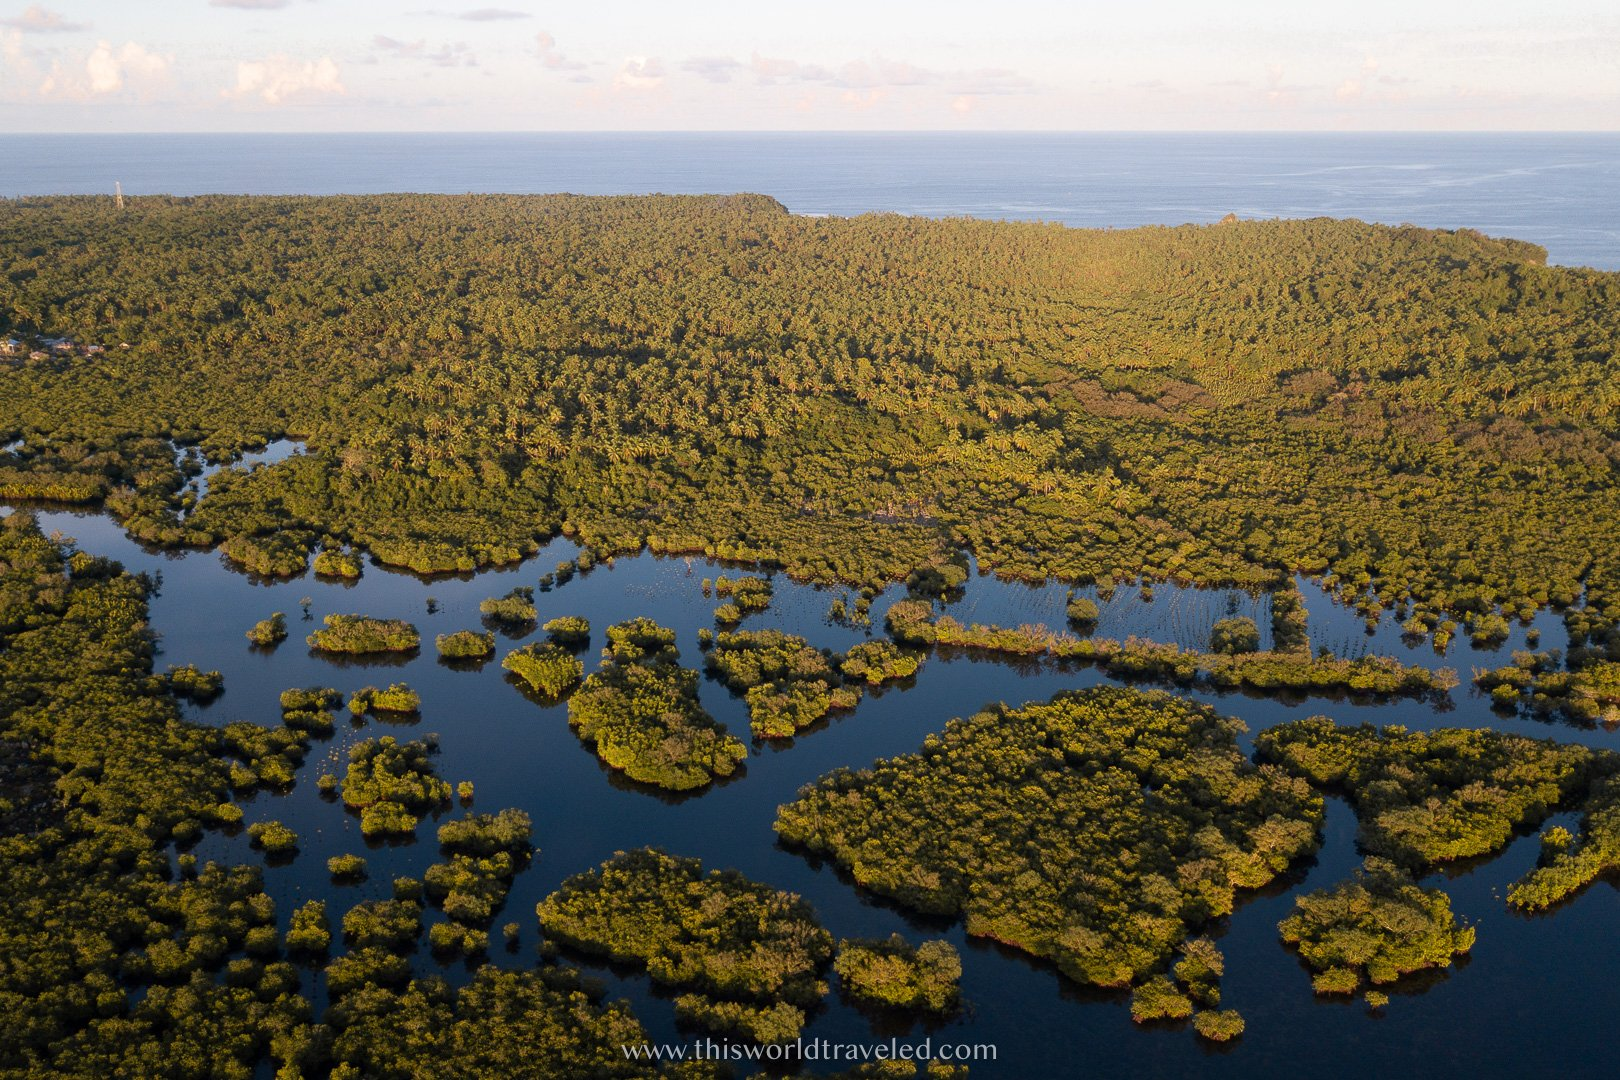 A mangrove forest surrounded by small rivers and lakes on the island of Siargao